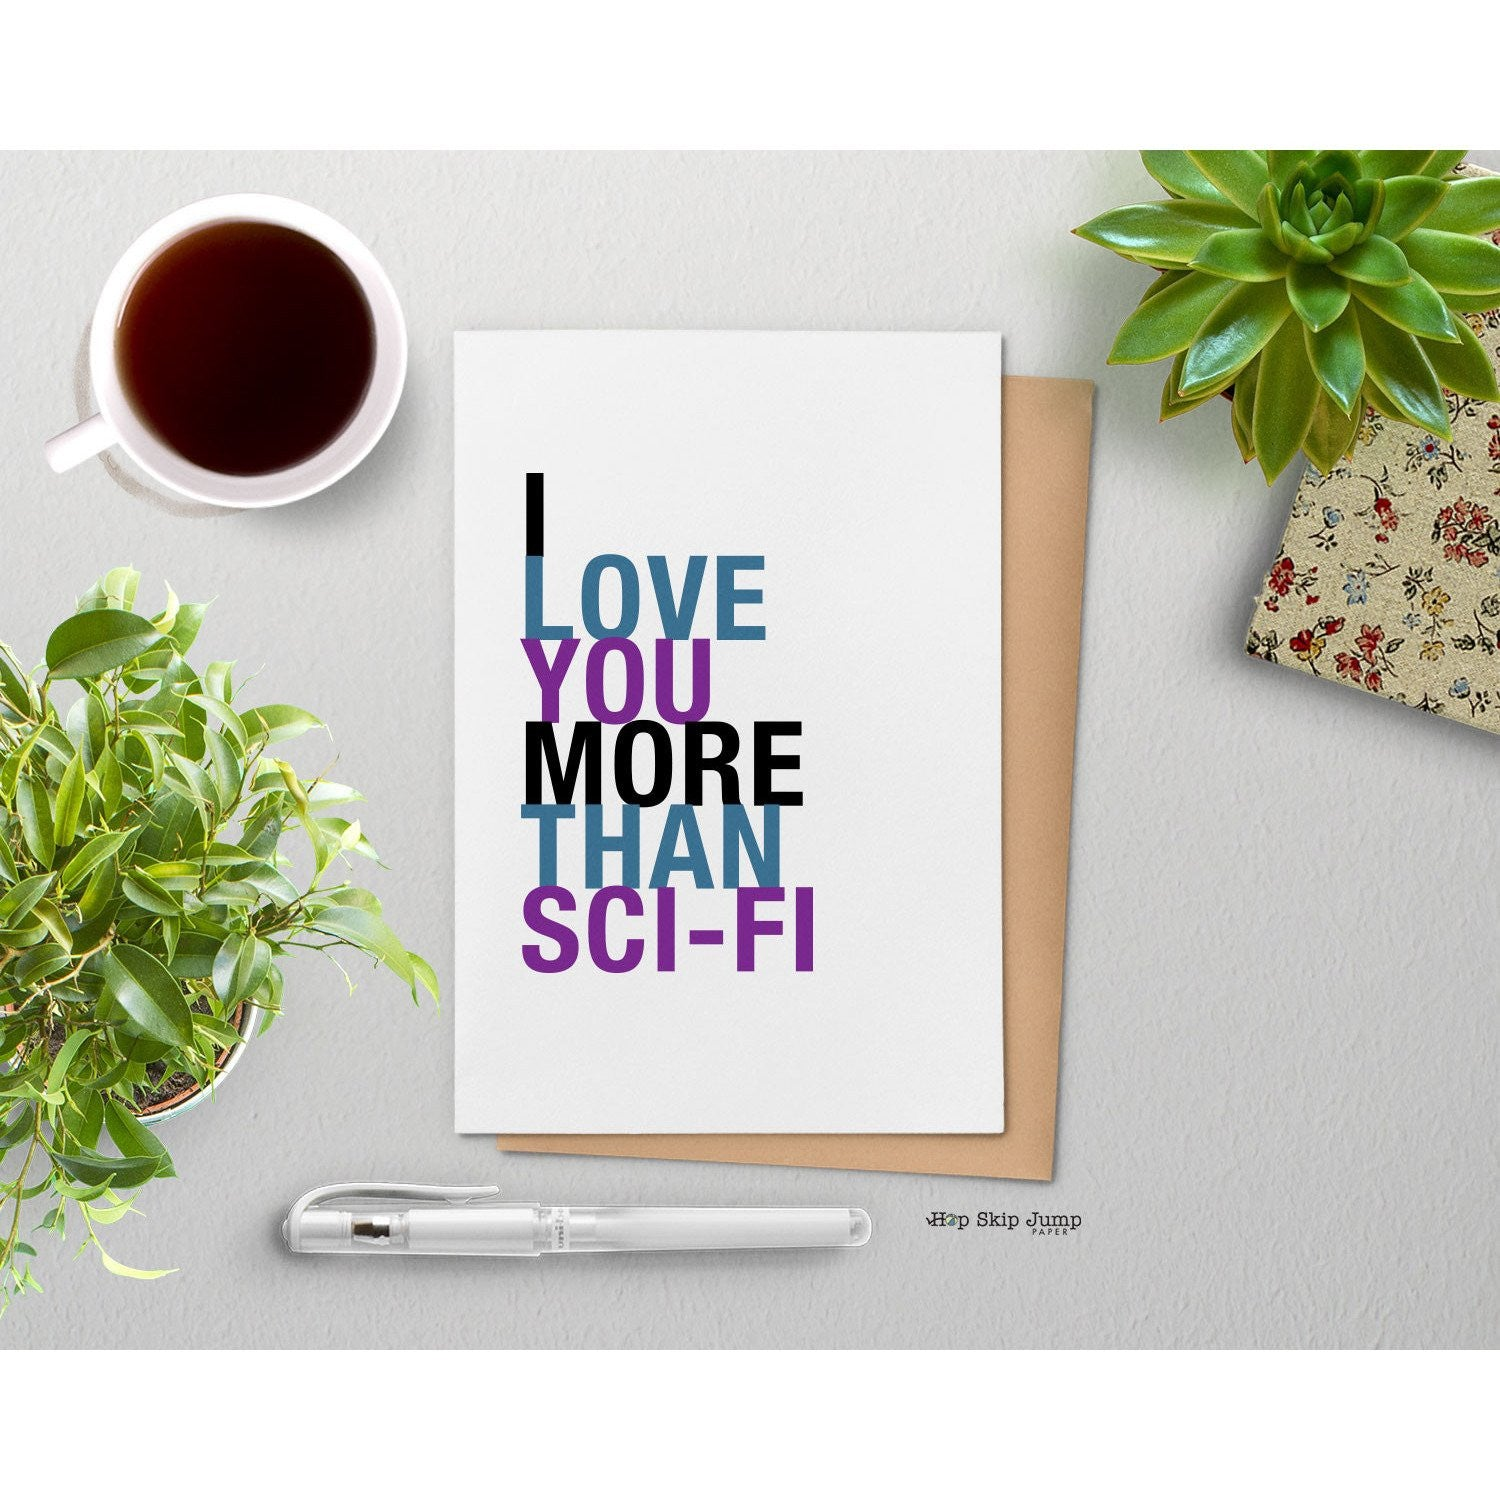 I Love You More Than Sci-Fi greeting card  - Shop Online